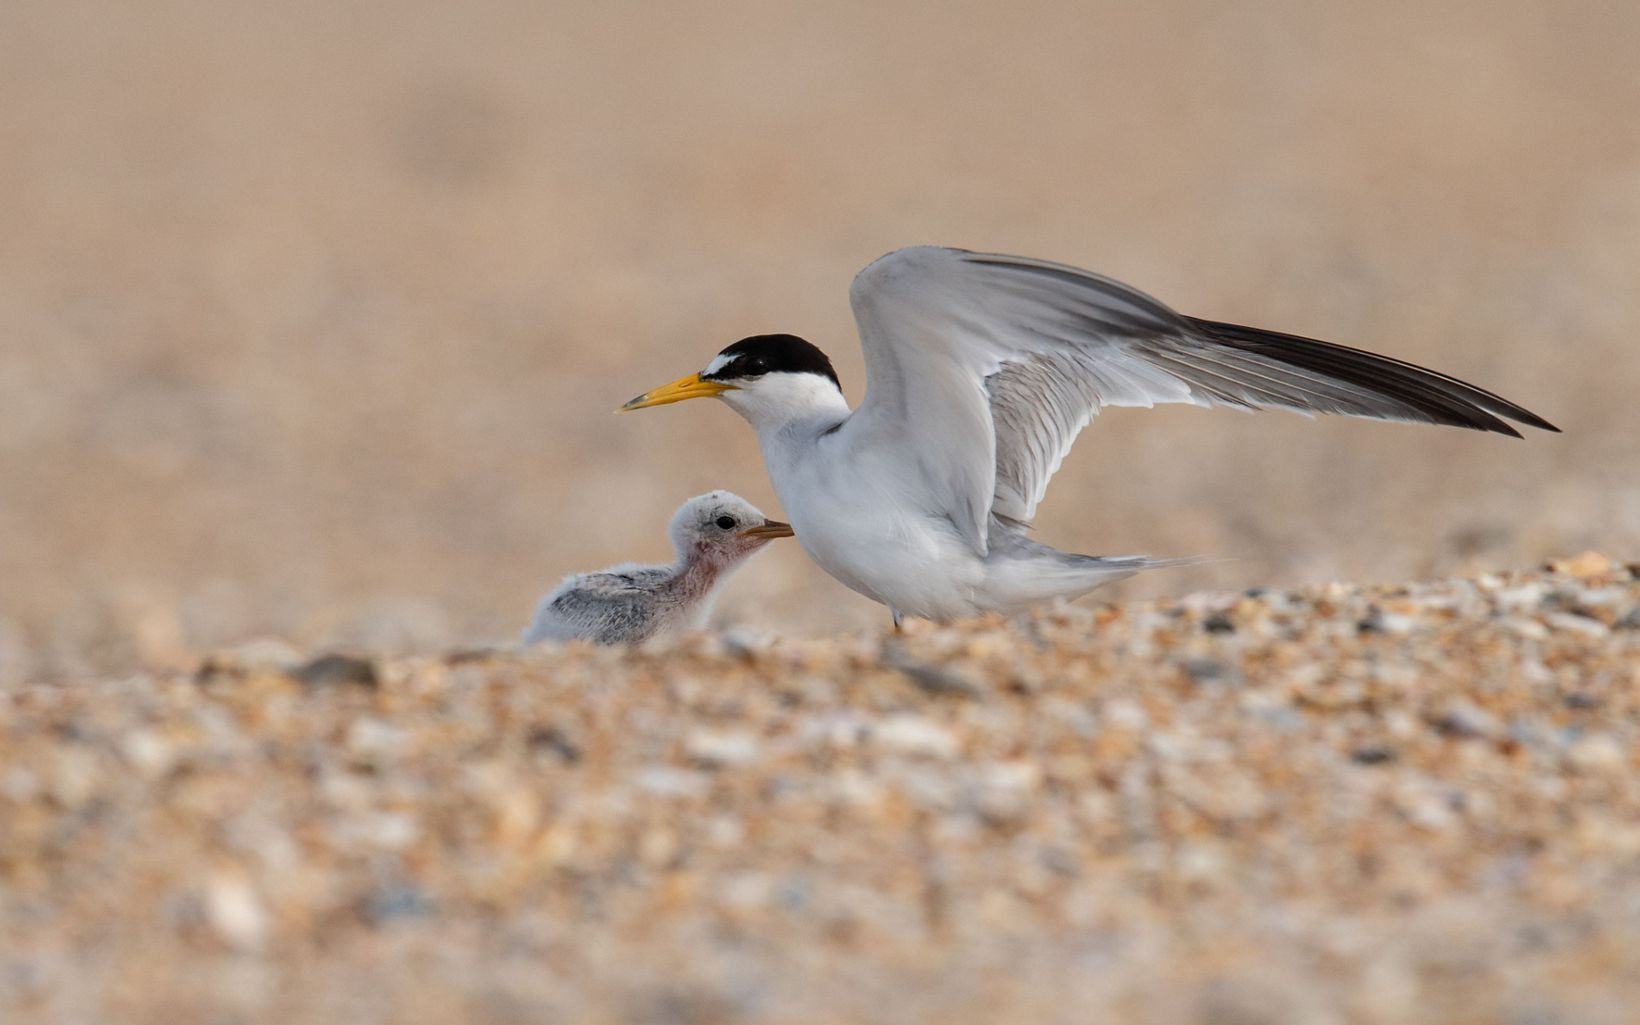 An adult least tern is standing on the beach with its chick.